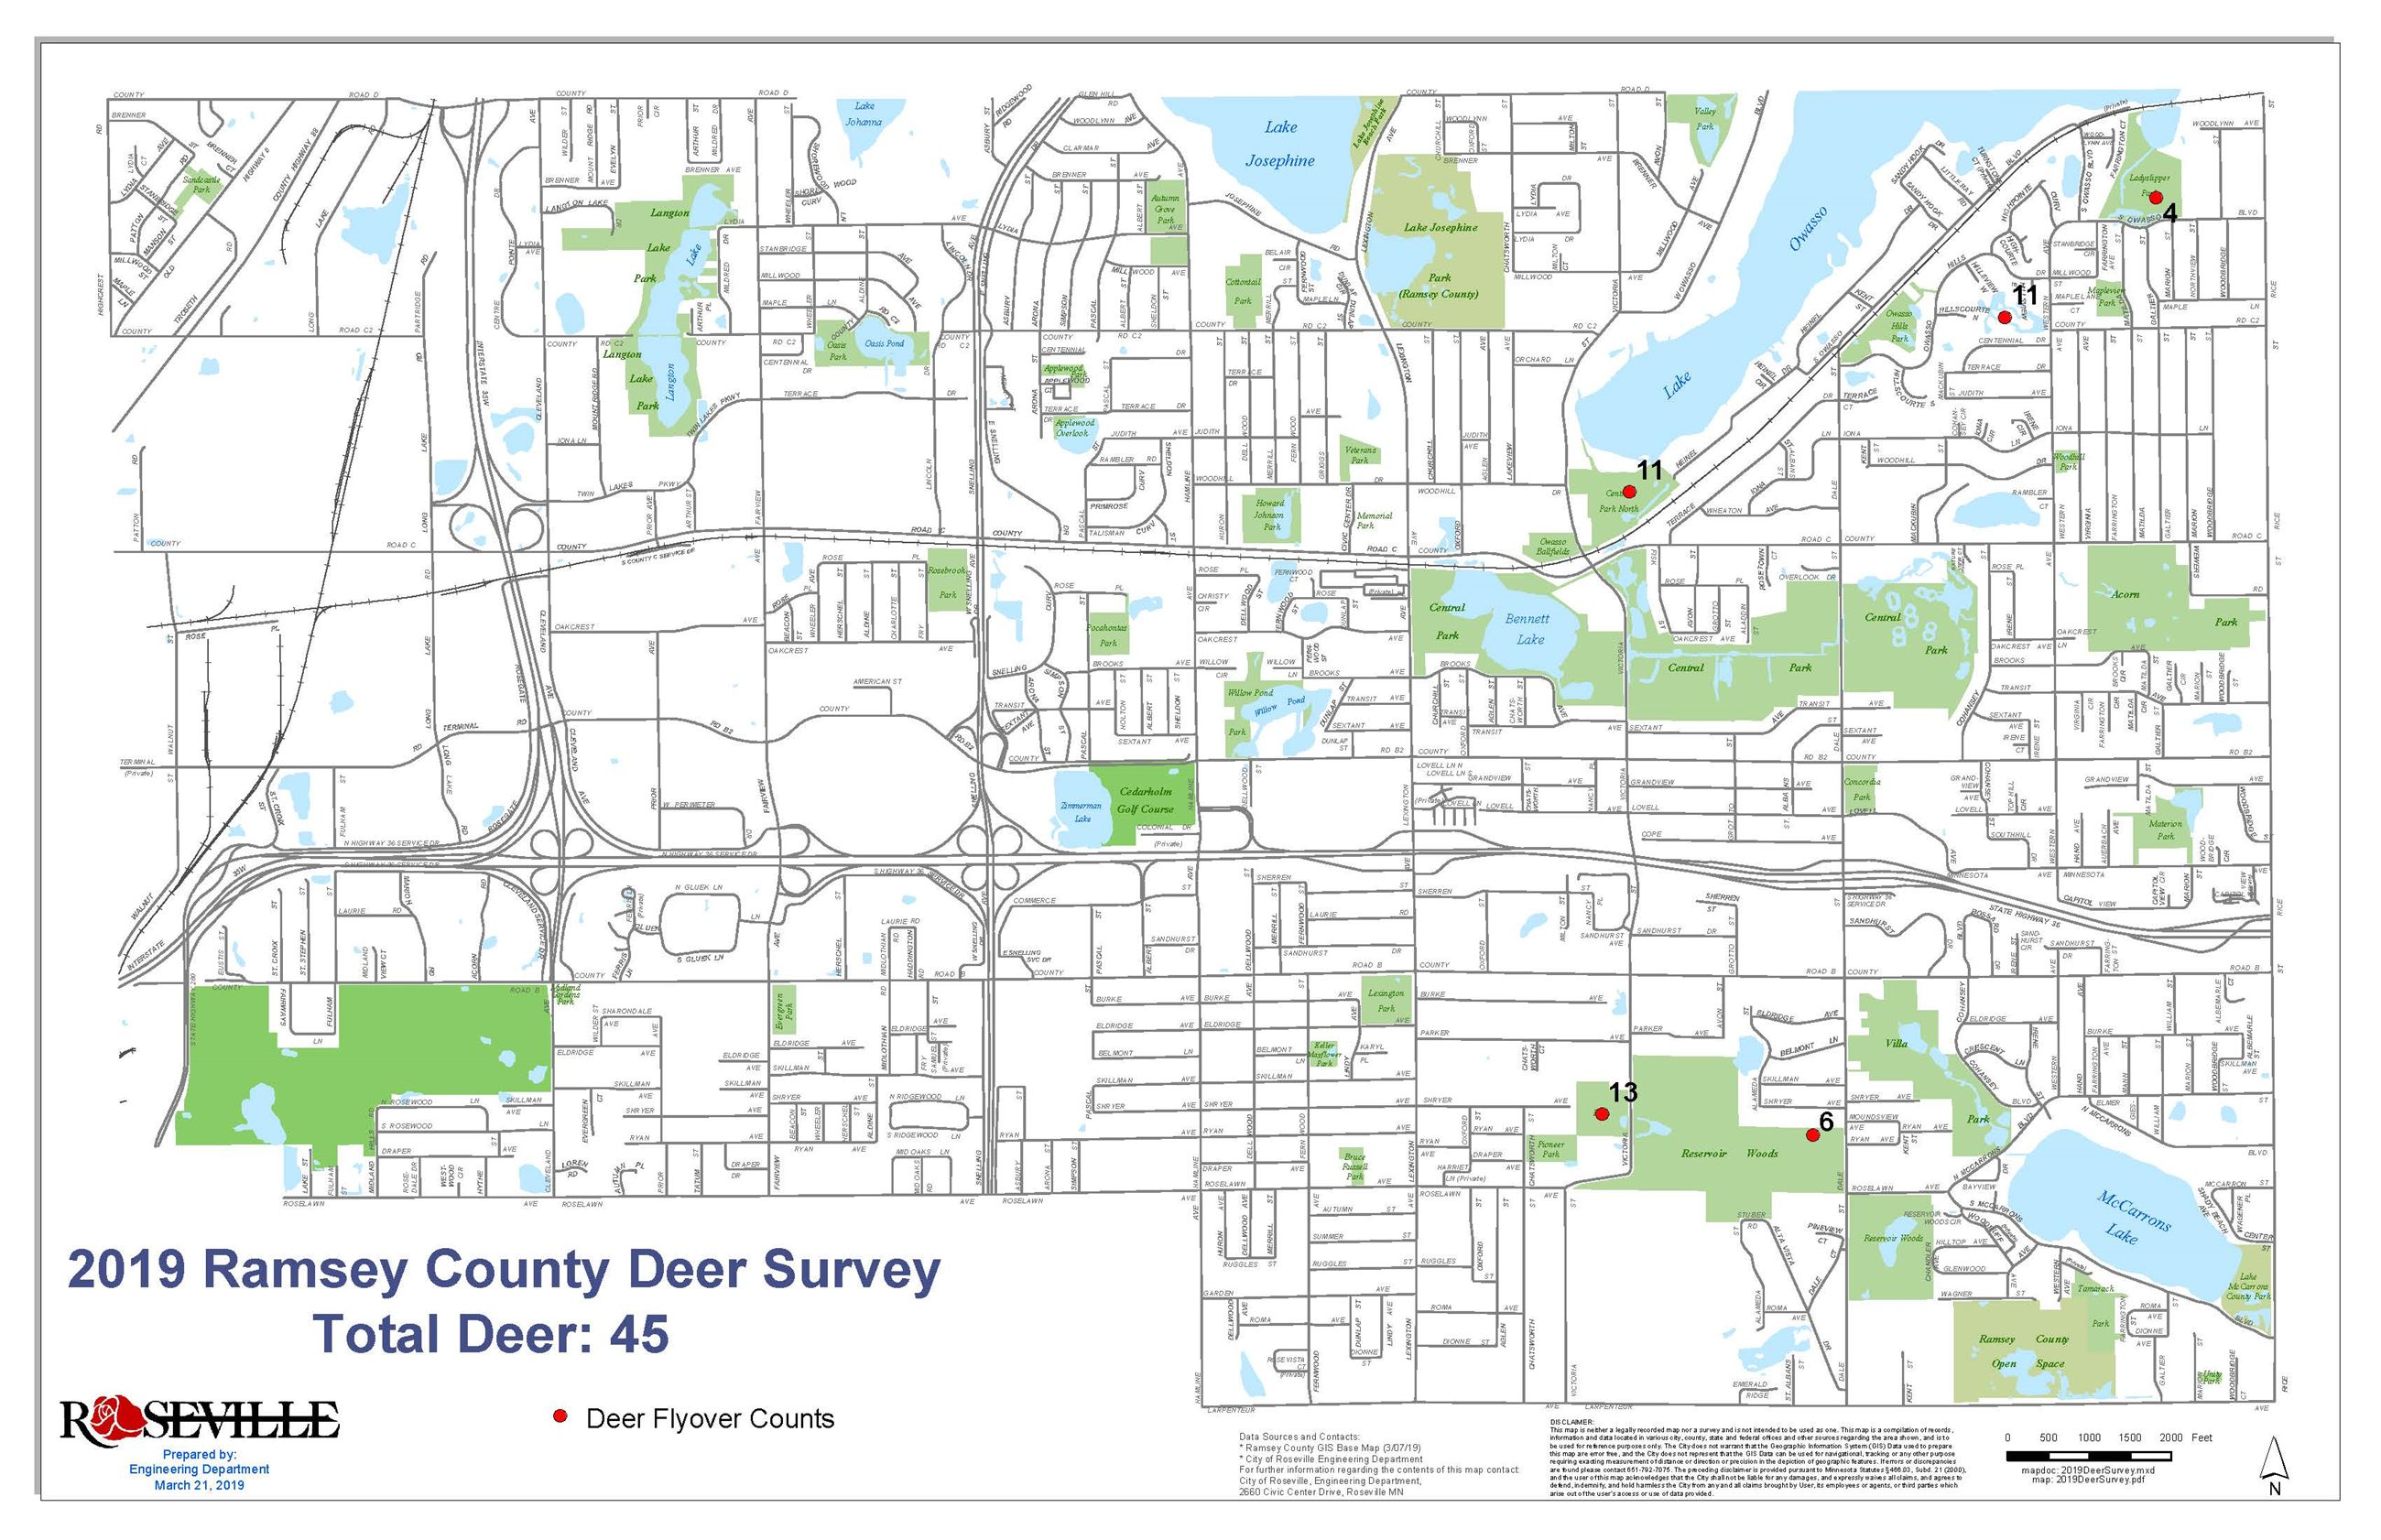 2019 Ramsey County Deer Survey (Roseville)